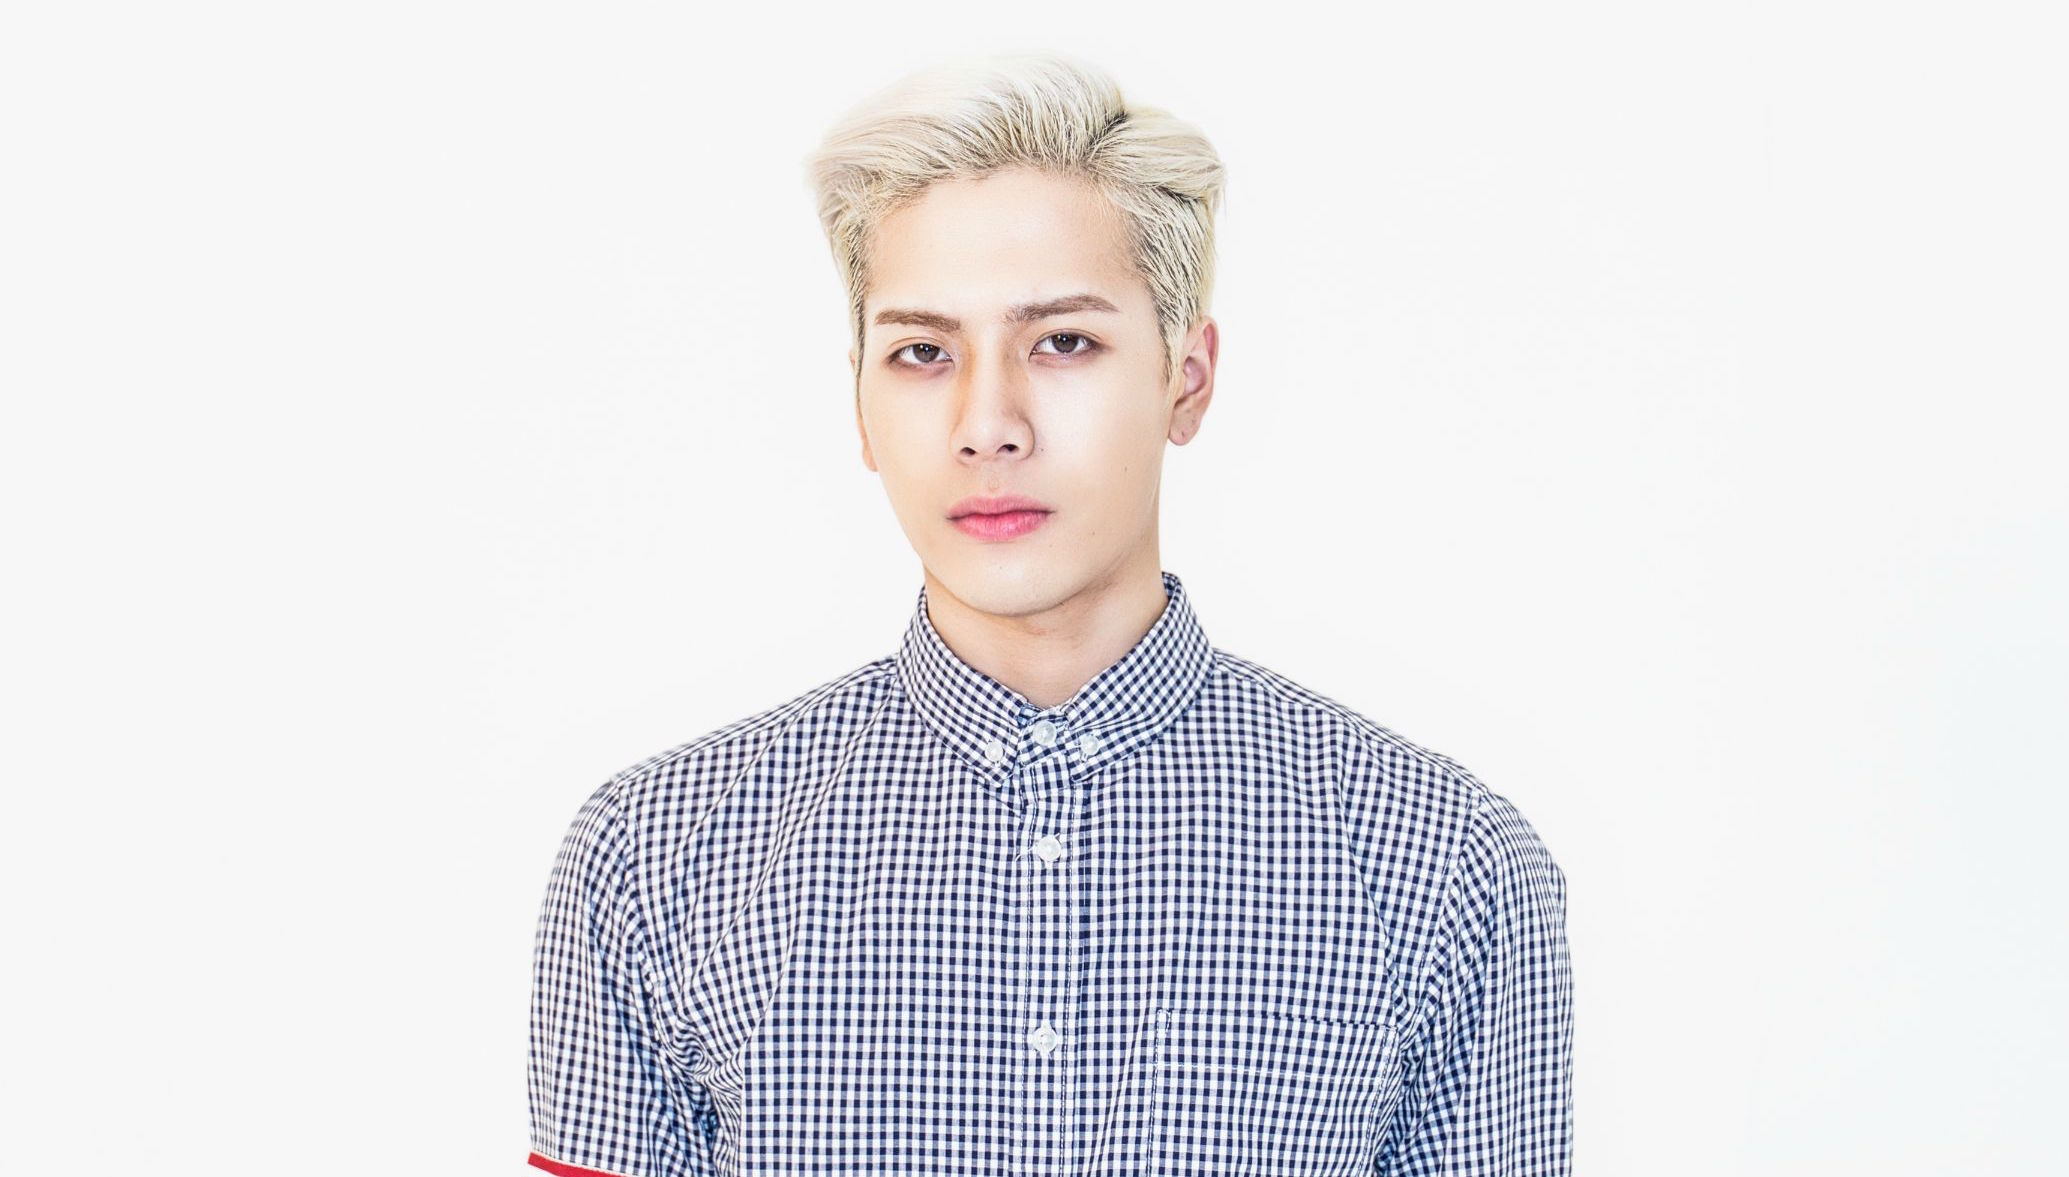 JYP Entertainment Says Jackson's Injury From Car Accident Is Not Serious